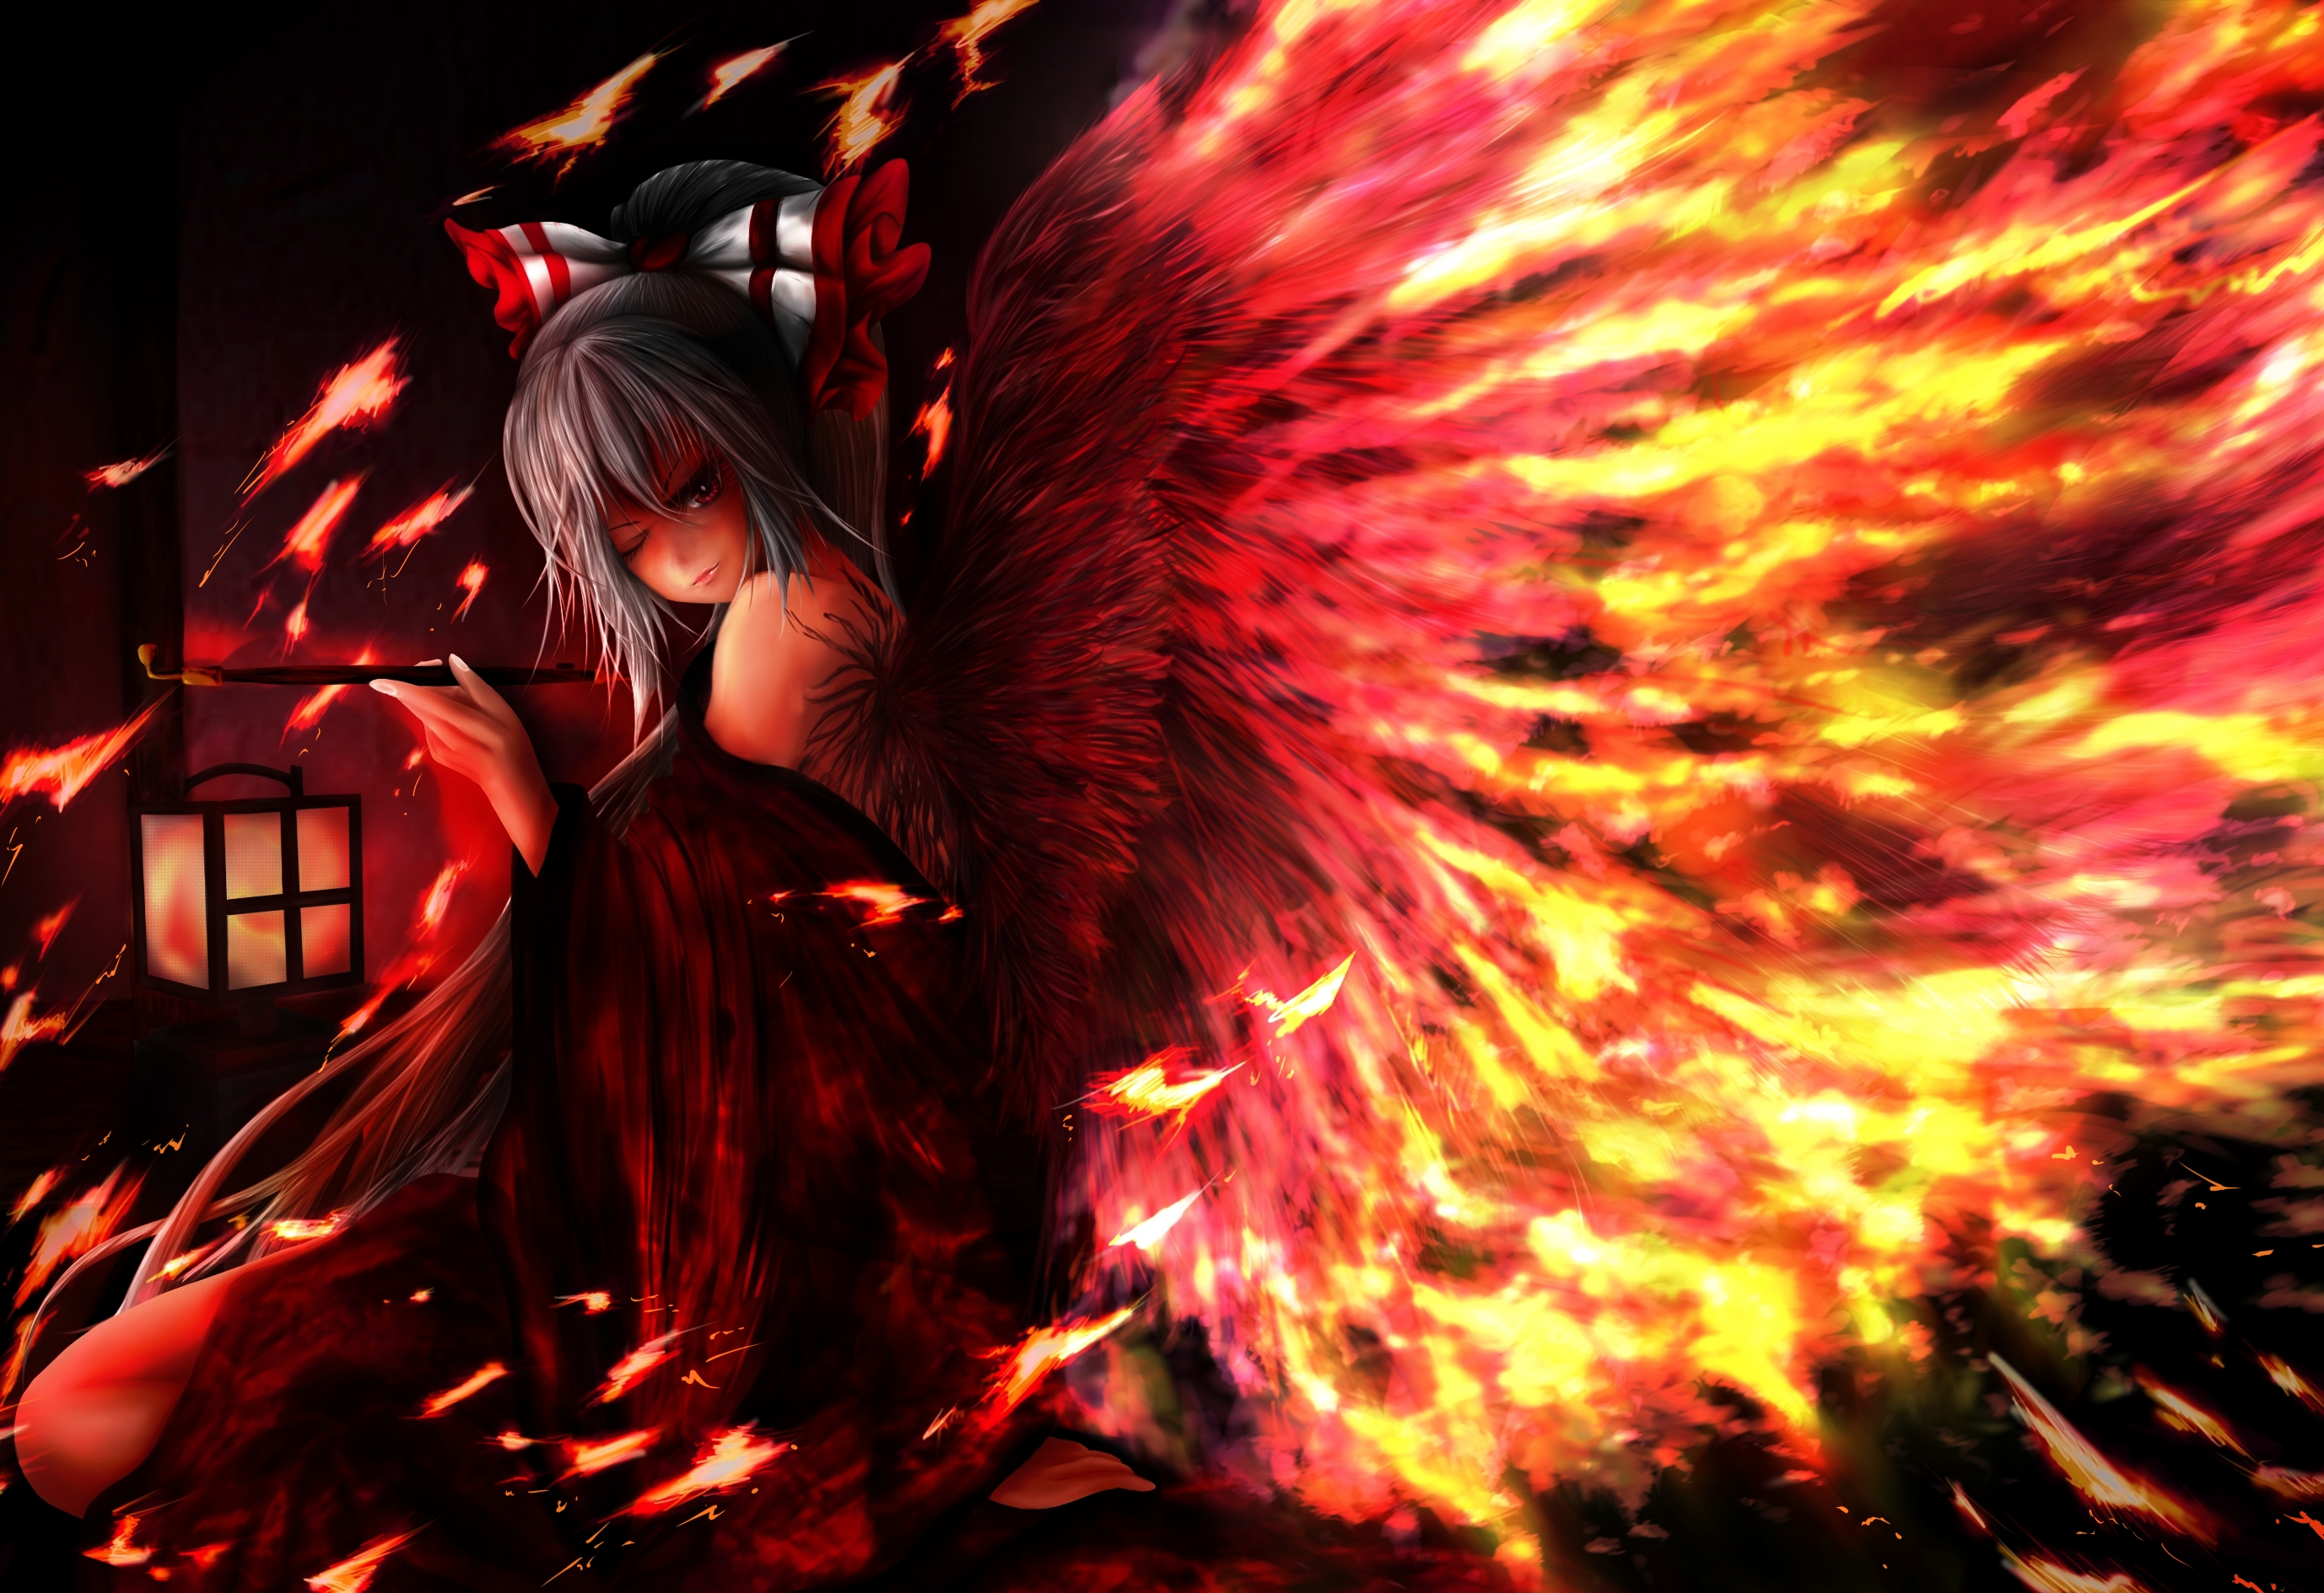 Touhou fantasy vector art angels fire wings girl gothic ...